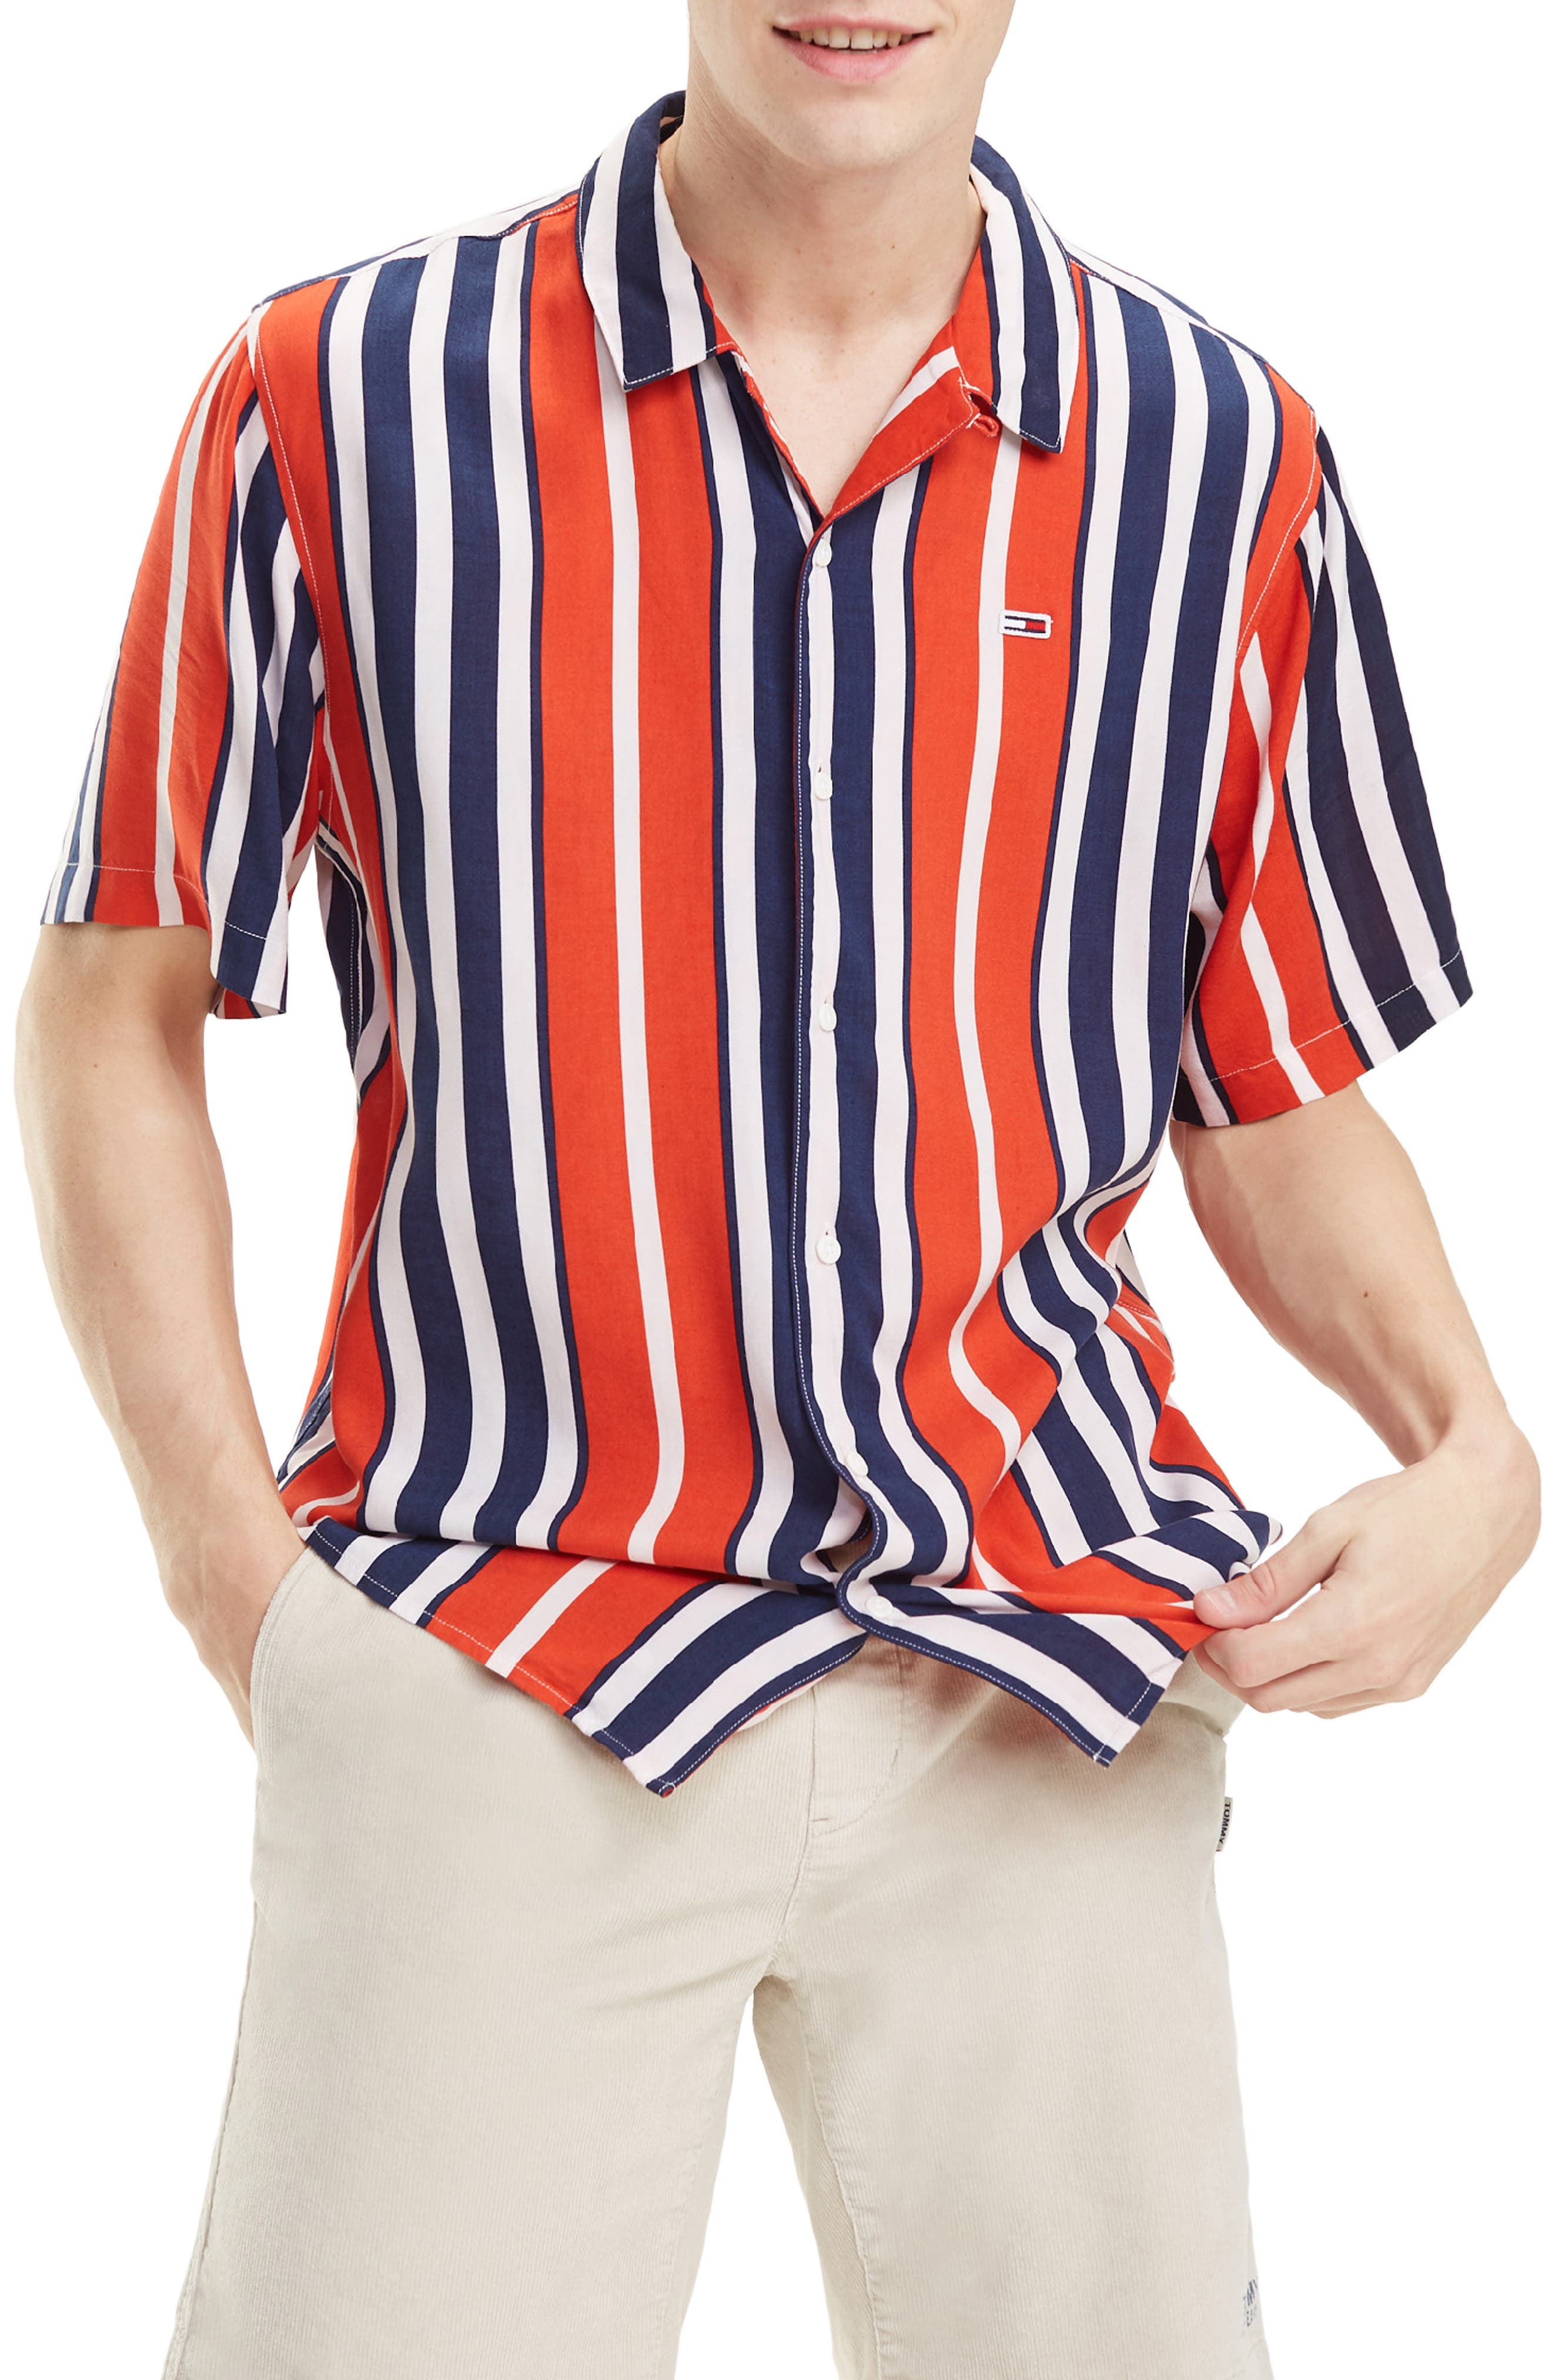 1960s -1970s Men's Clothing Mens Tommy Jeans Relaxed Fit Stripe Camp Shirt $31.27 AT vintagedancer.com